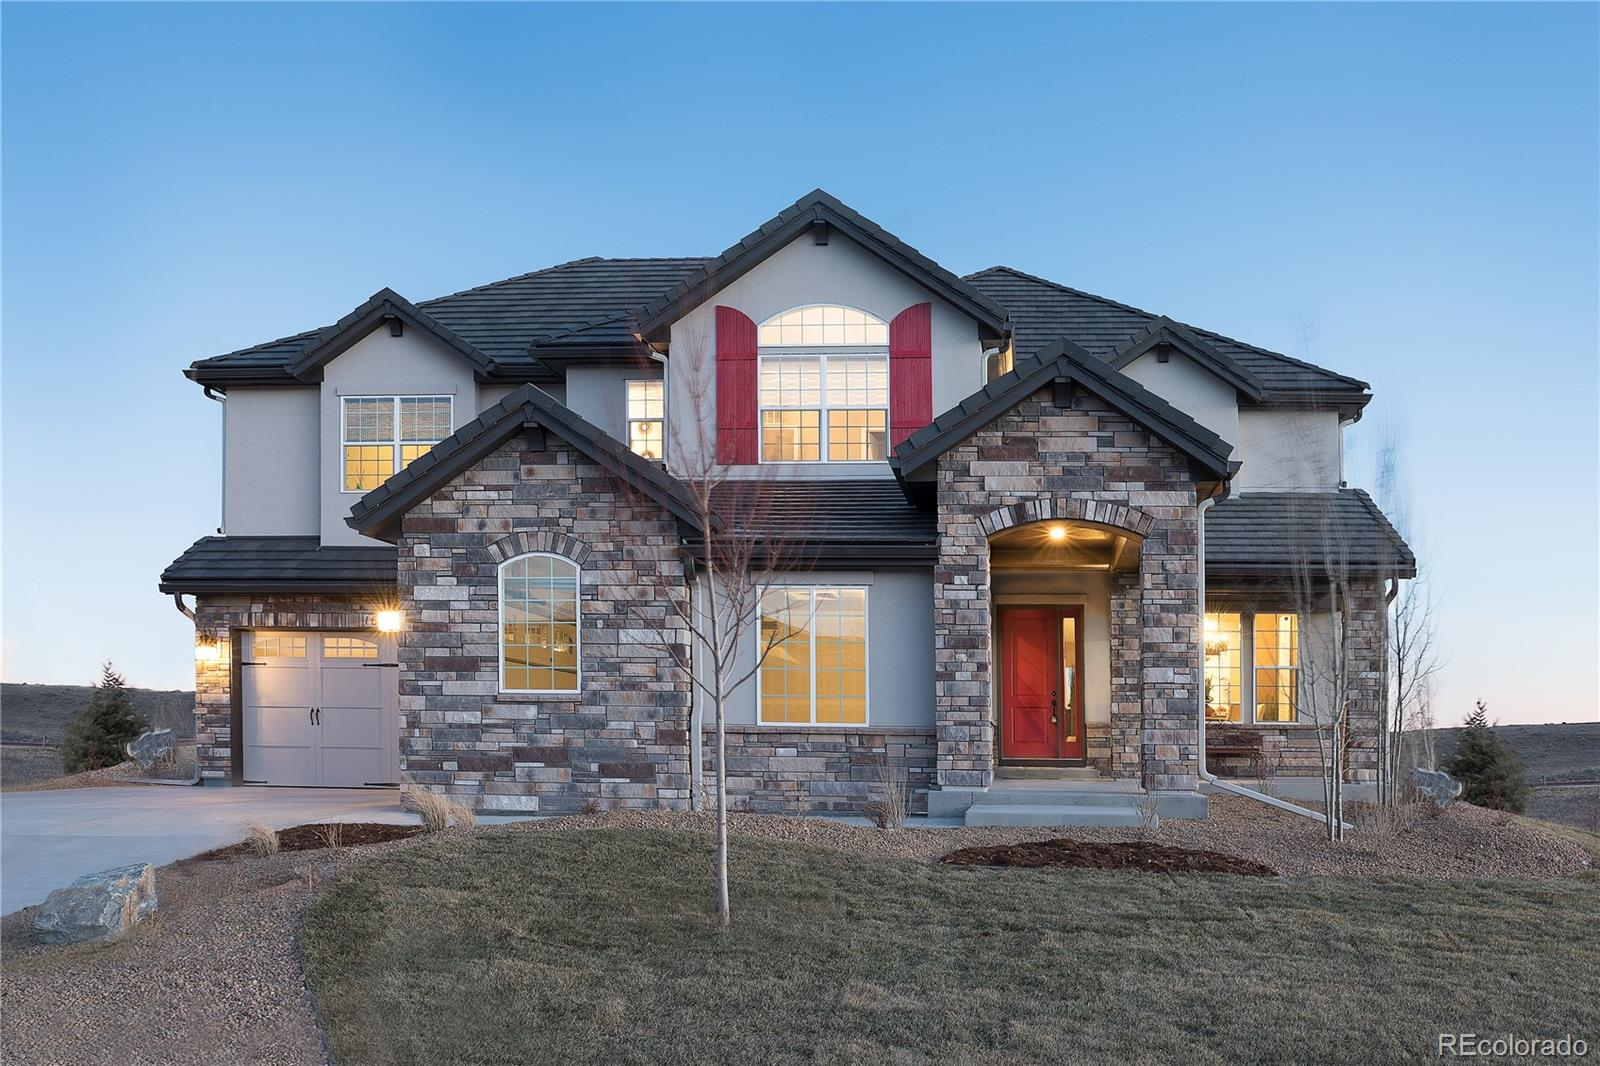 16782 W 95th Lane, Arvada, CO 80007 - Arvada, CO real estate listing